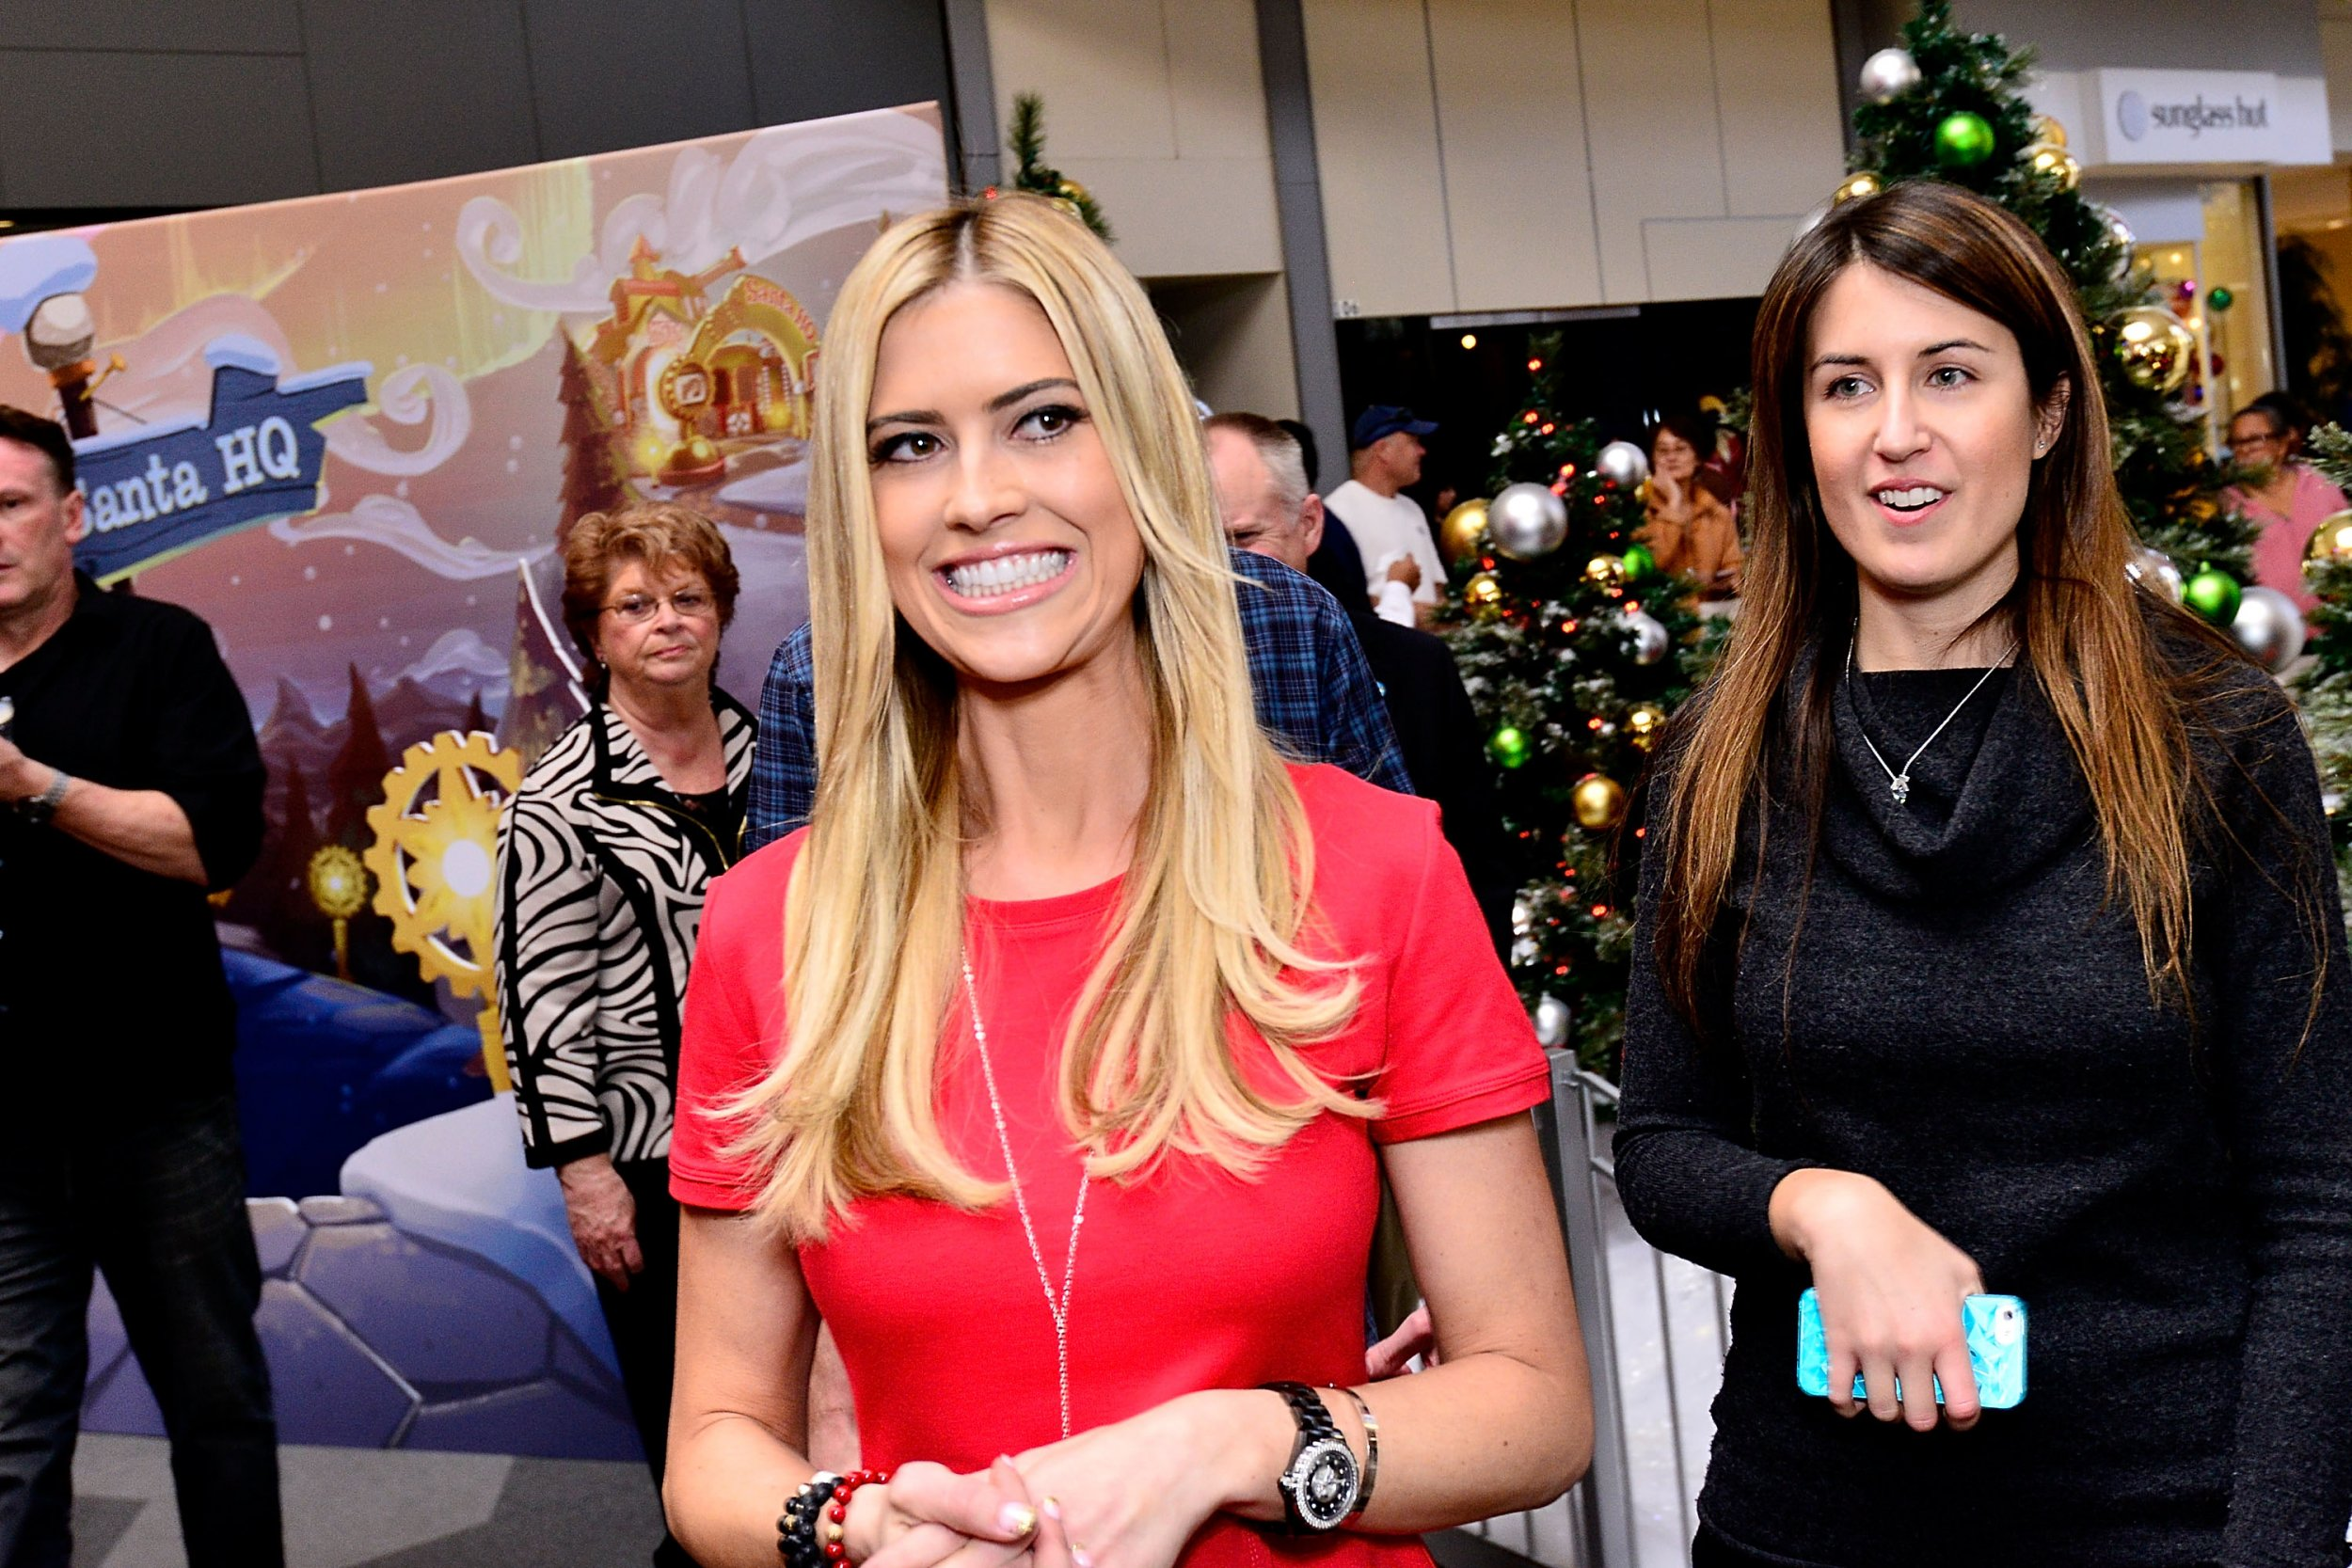 a68a81240130  Flip or Flop  Star Christina El Moussa Announces Pregnancy With New  Husband